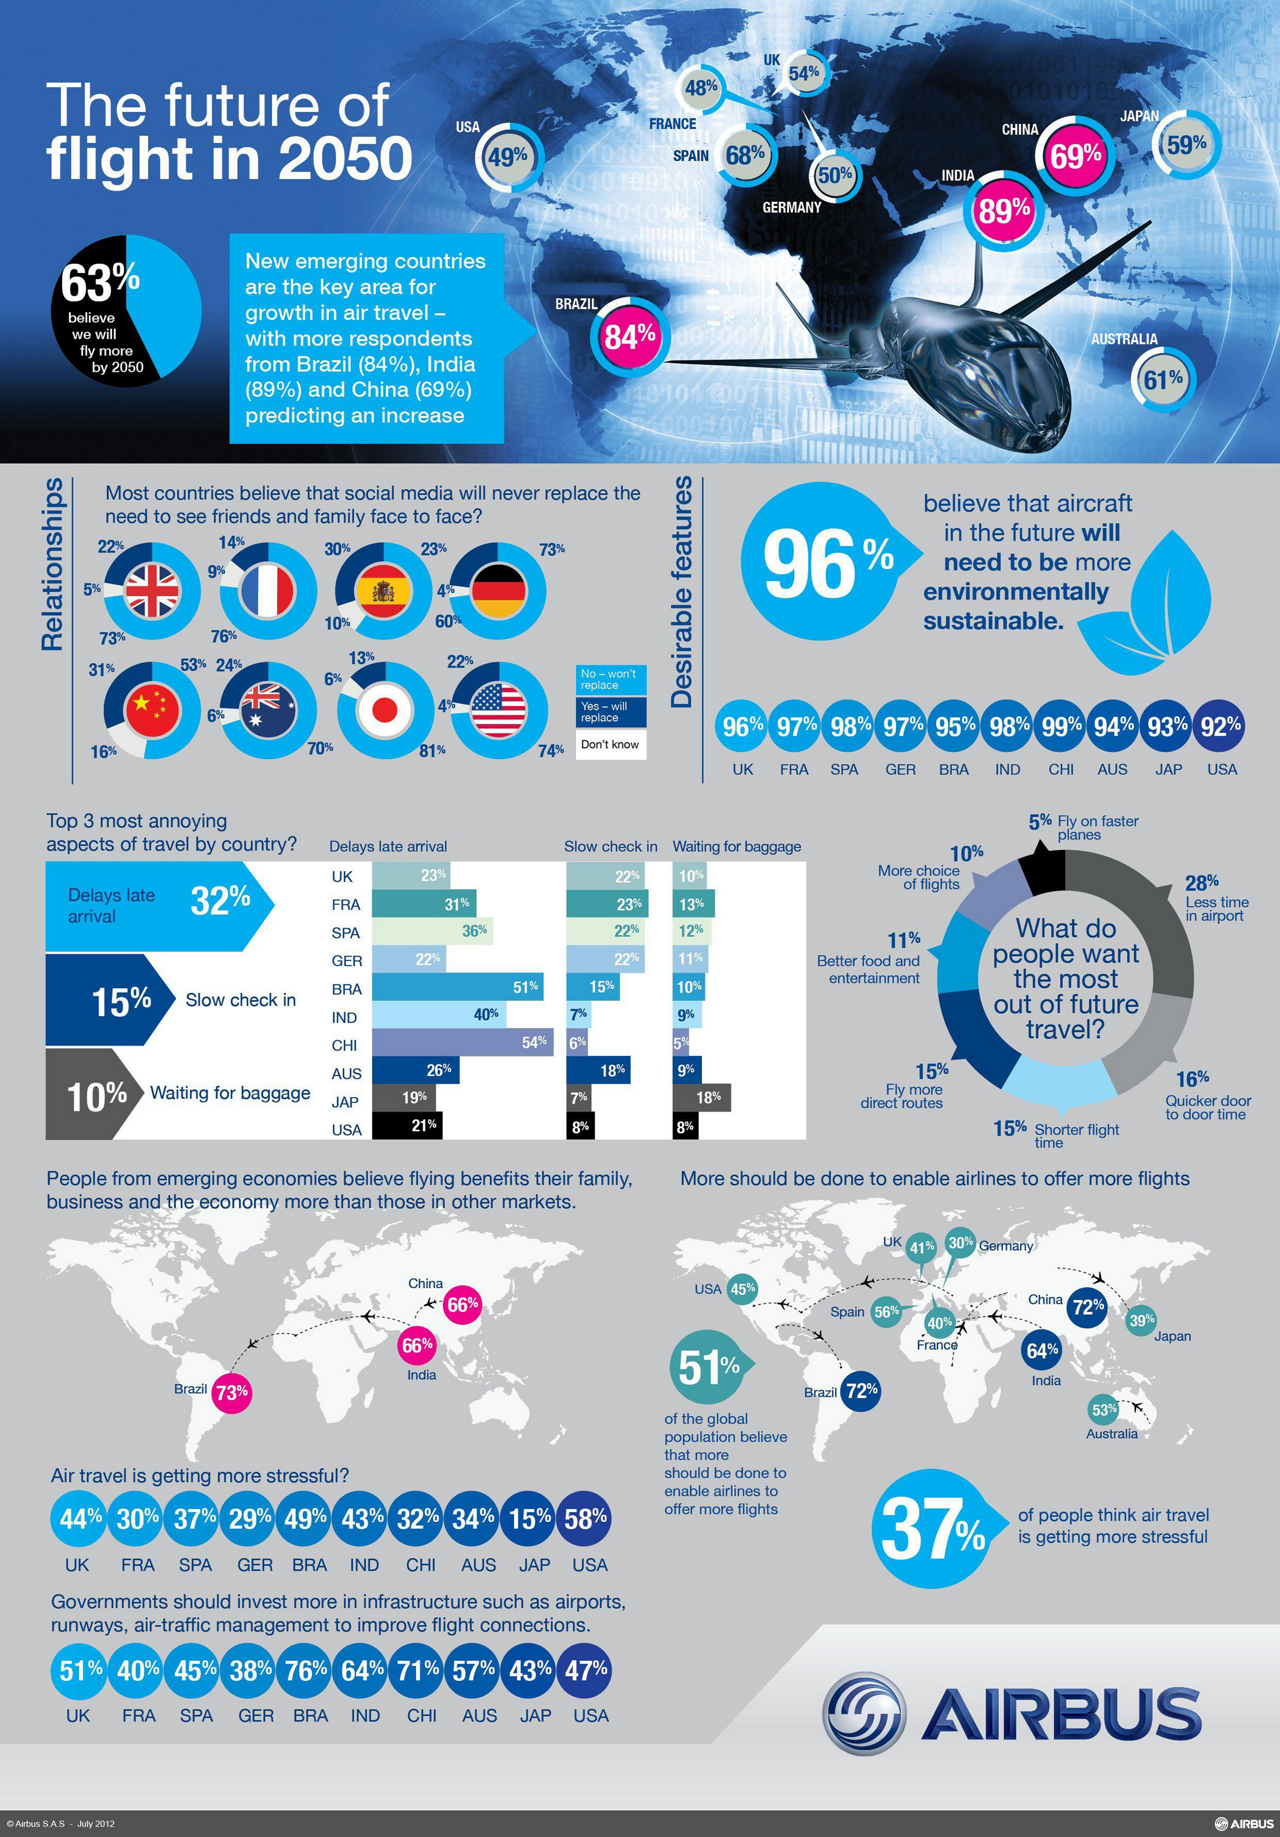 This infographic includes passenger survey results concerning the future of flight in 2050